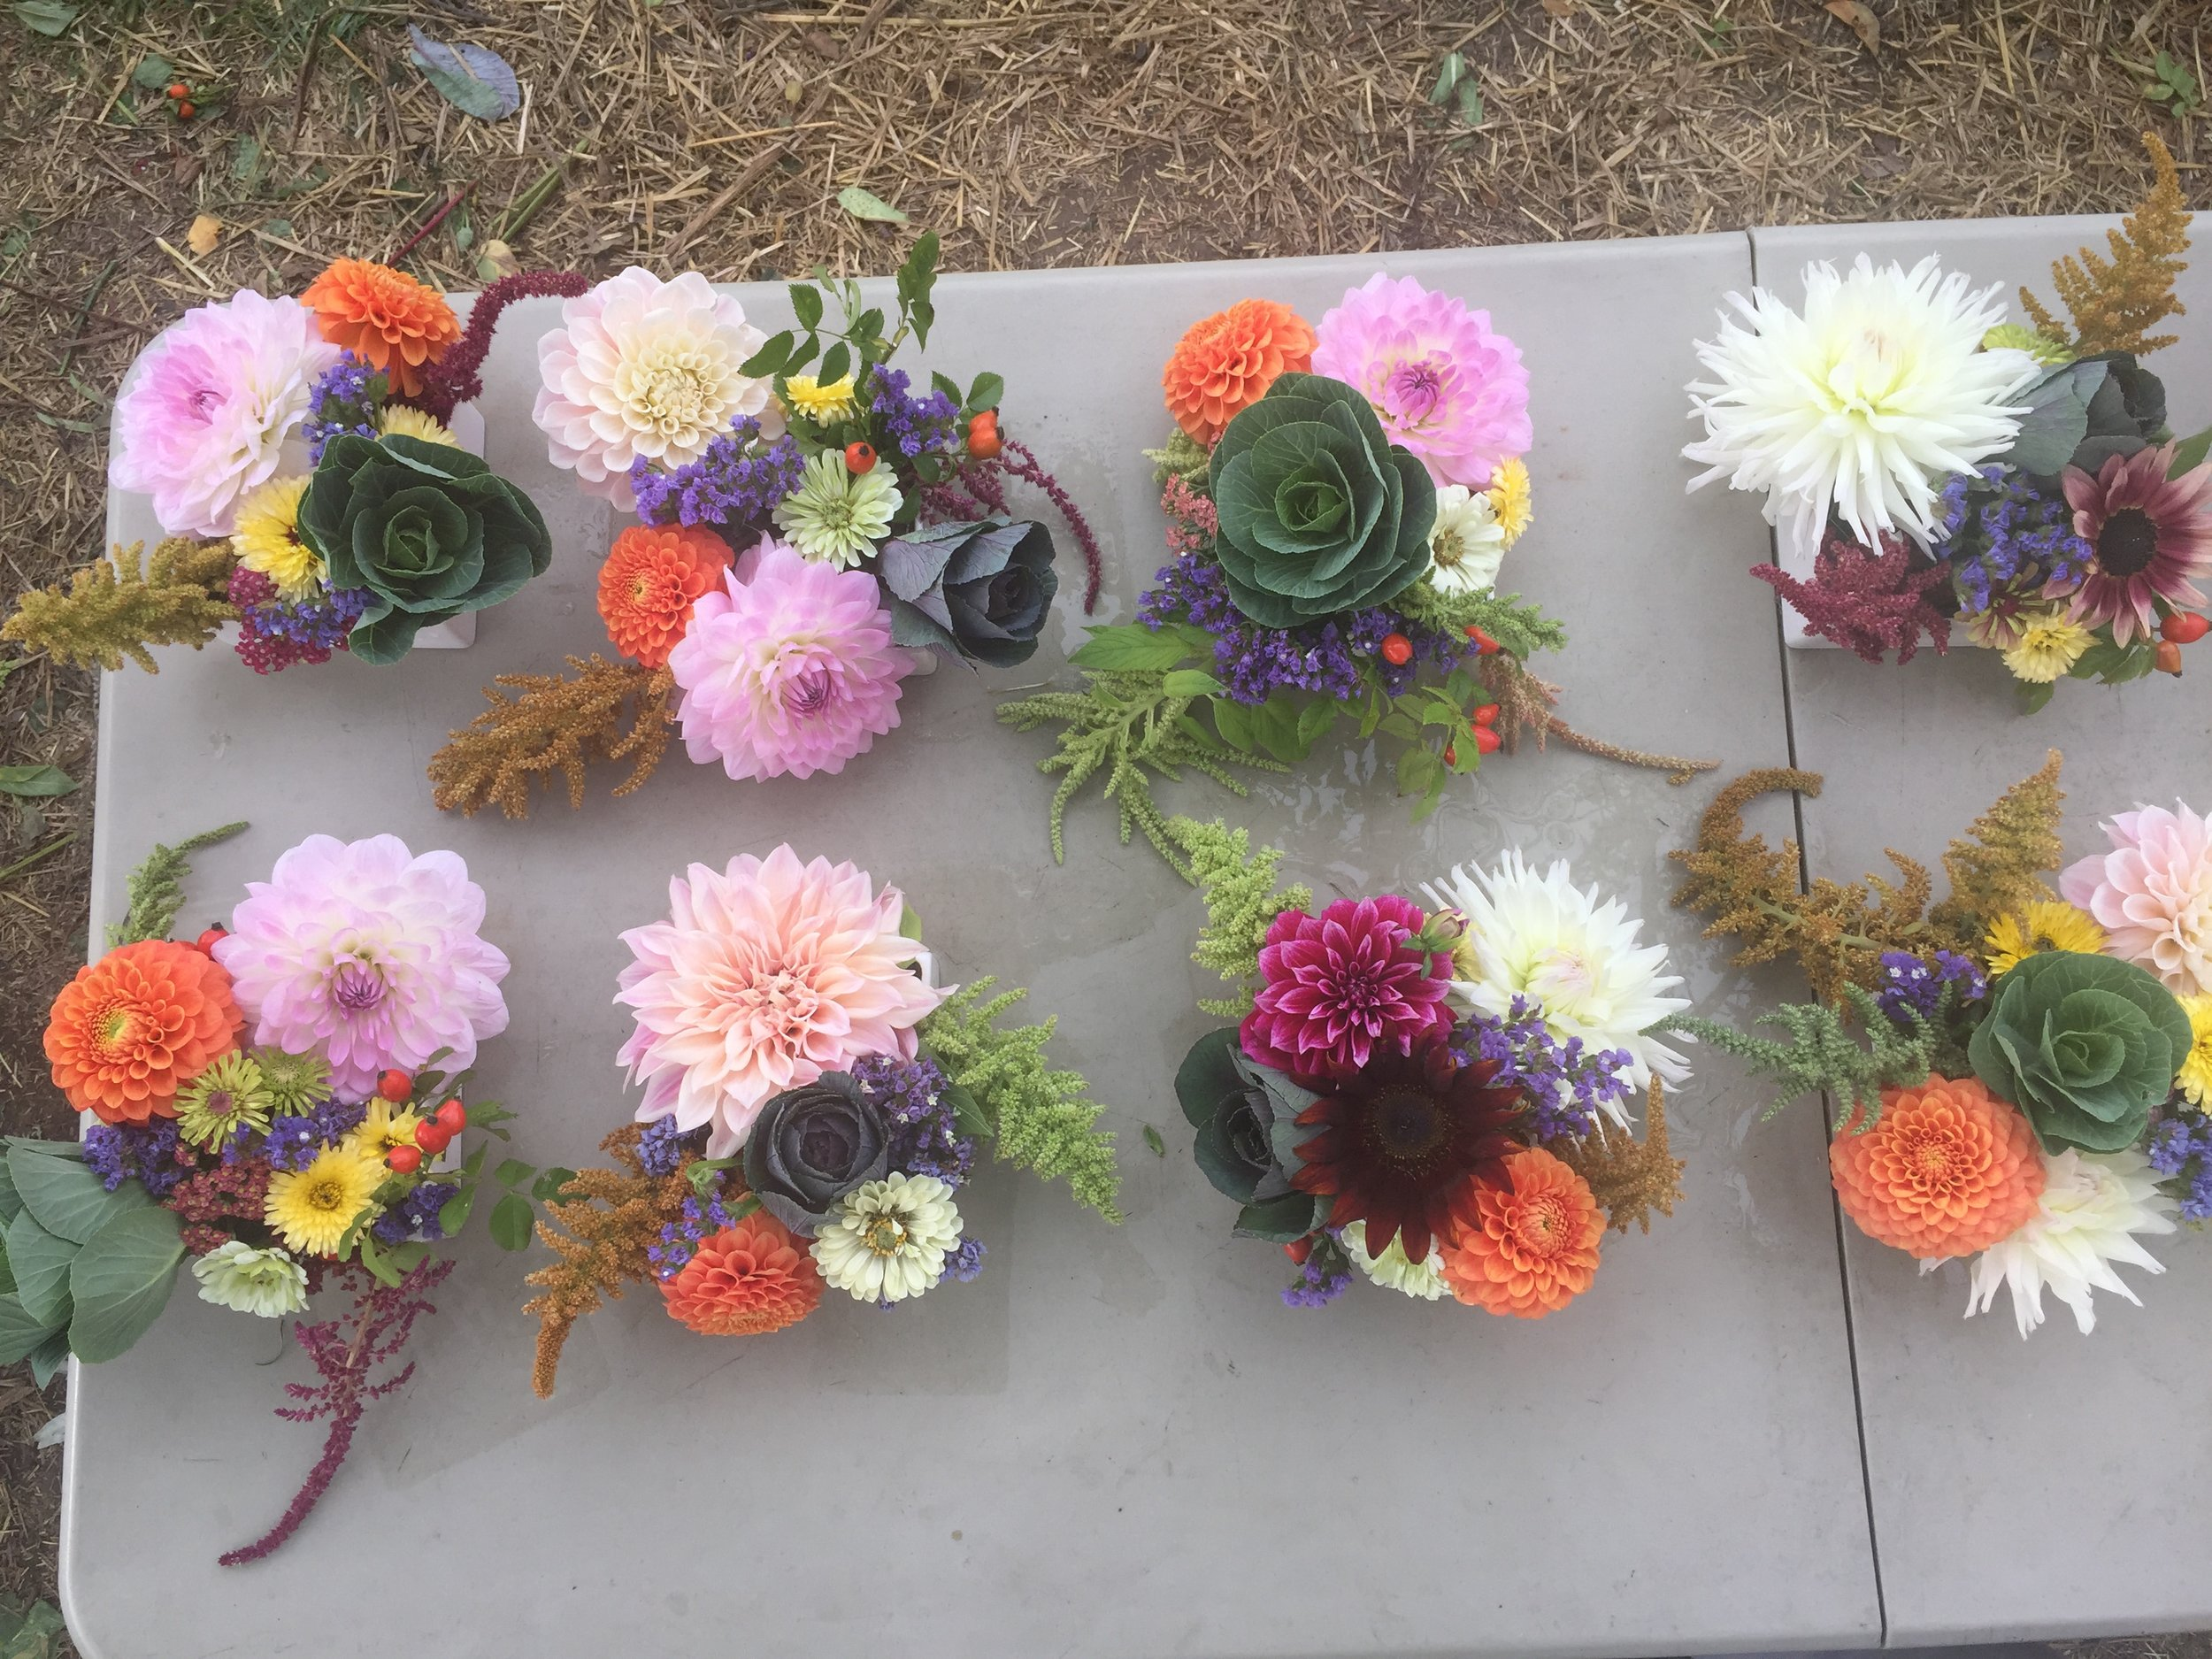 Classy centerpieces for a recent wedding, featuring luscious dahlias from Summer Dreams Farm in Oxford MI (they ONLY grow dahlias).